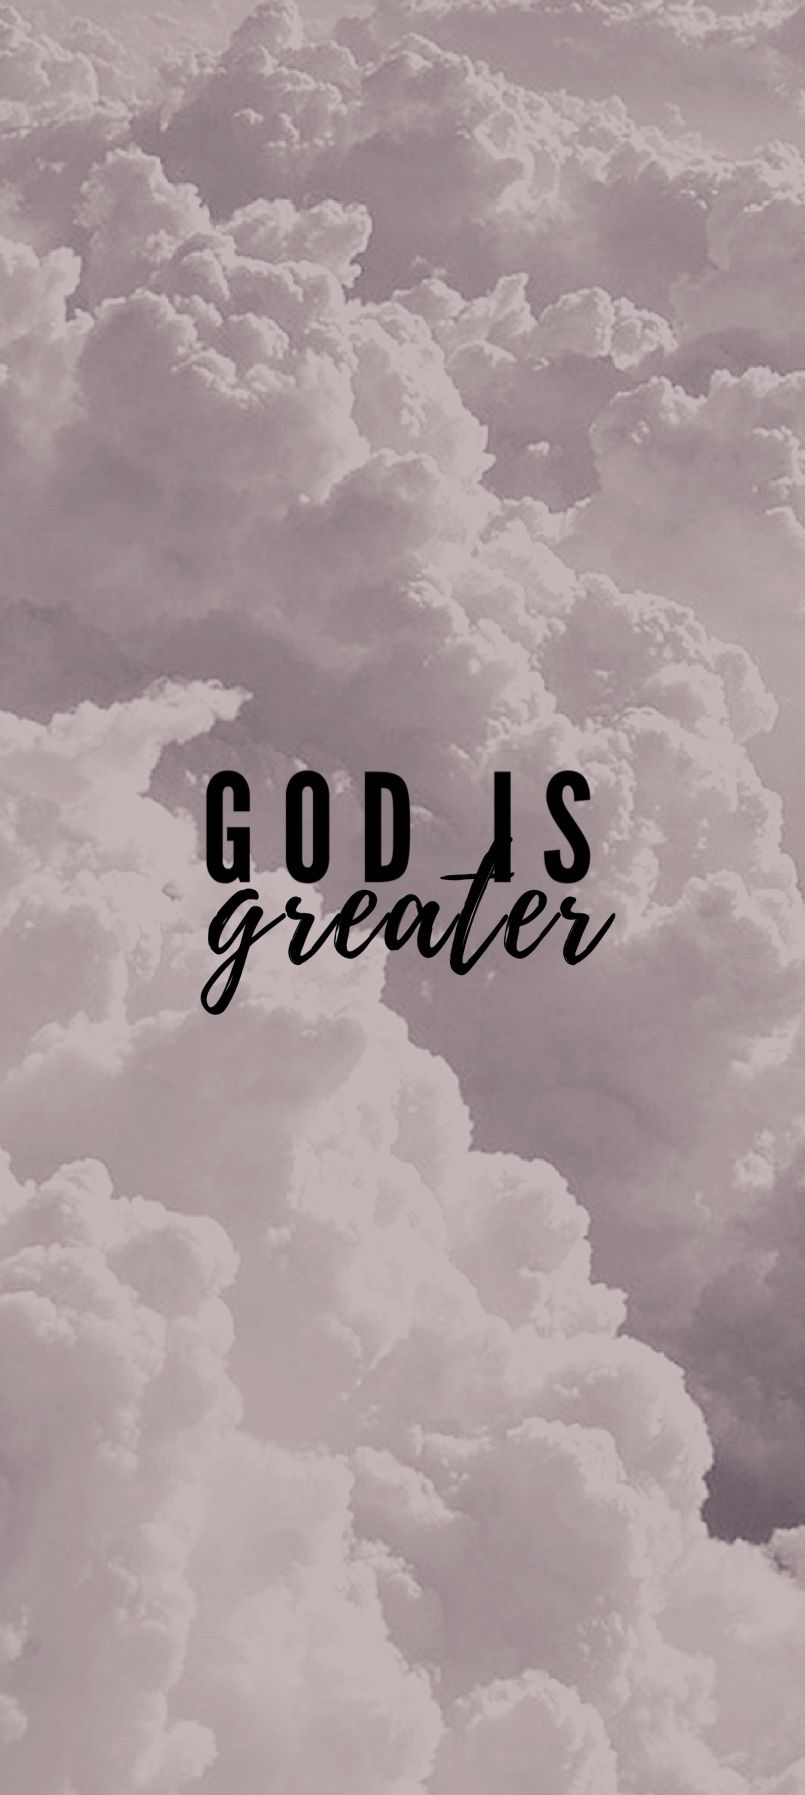 Christian Phone Wallpaper Background Christian Iphone Wallpaper Phone Wallpaper Bible Christian Quotes Wallpaper